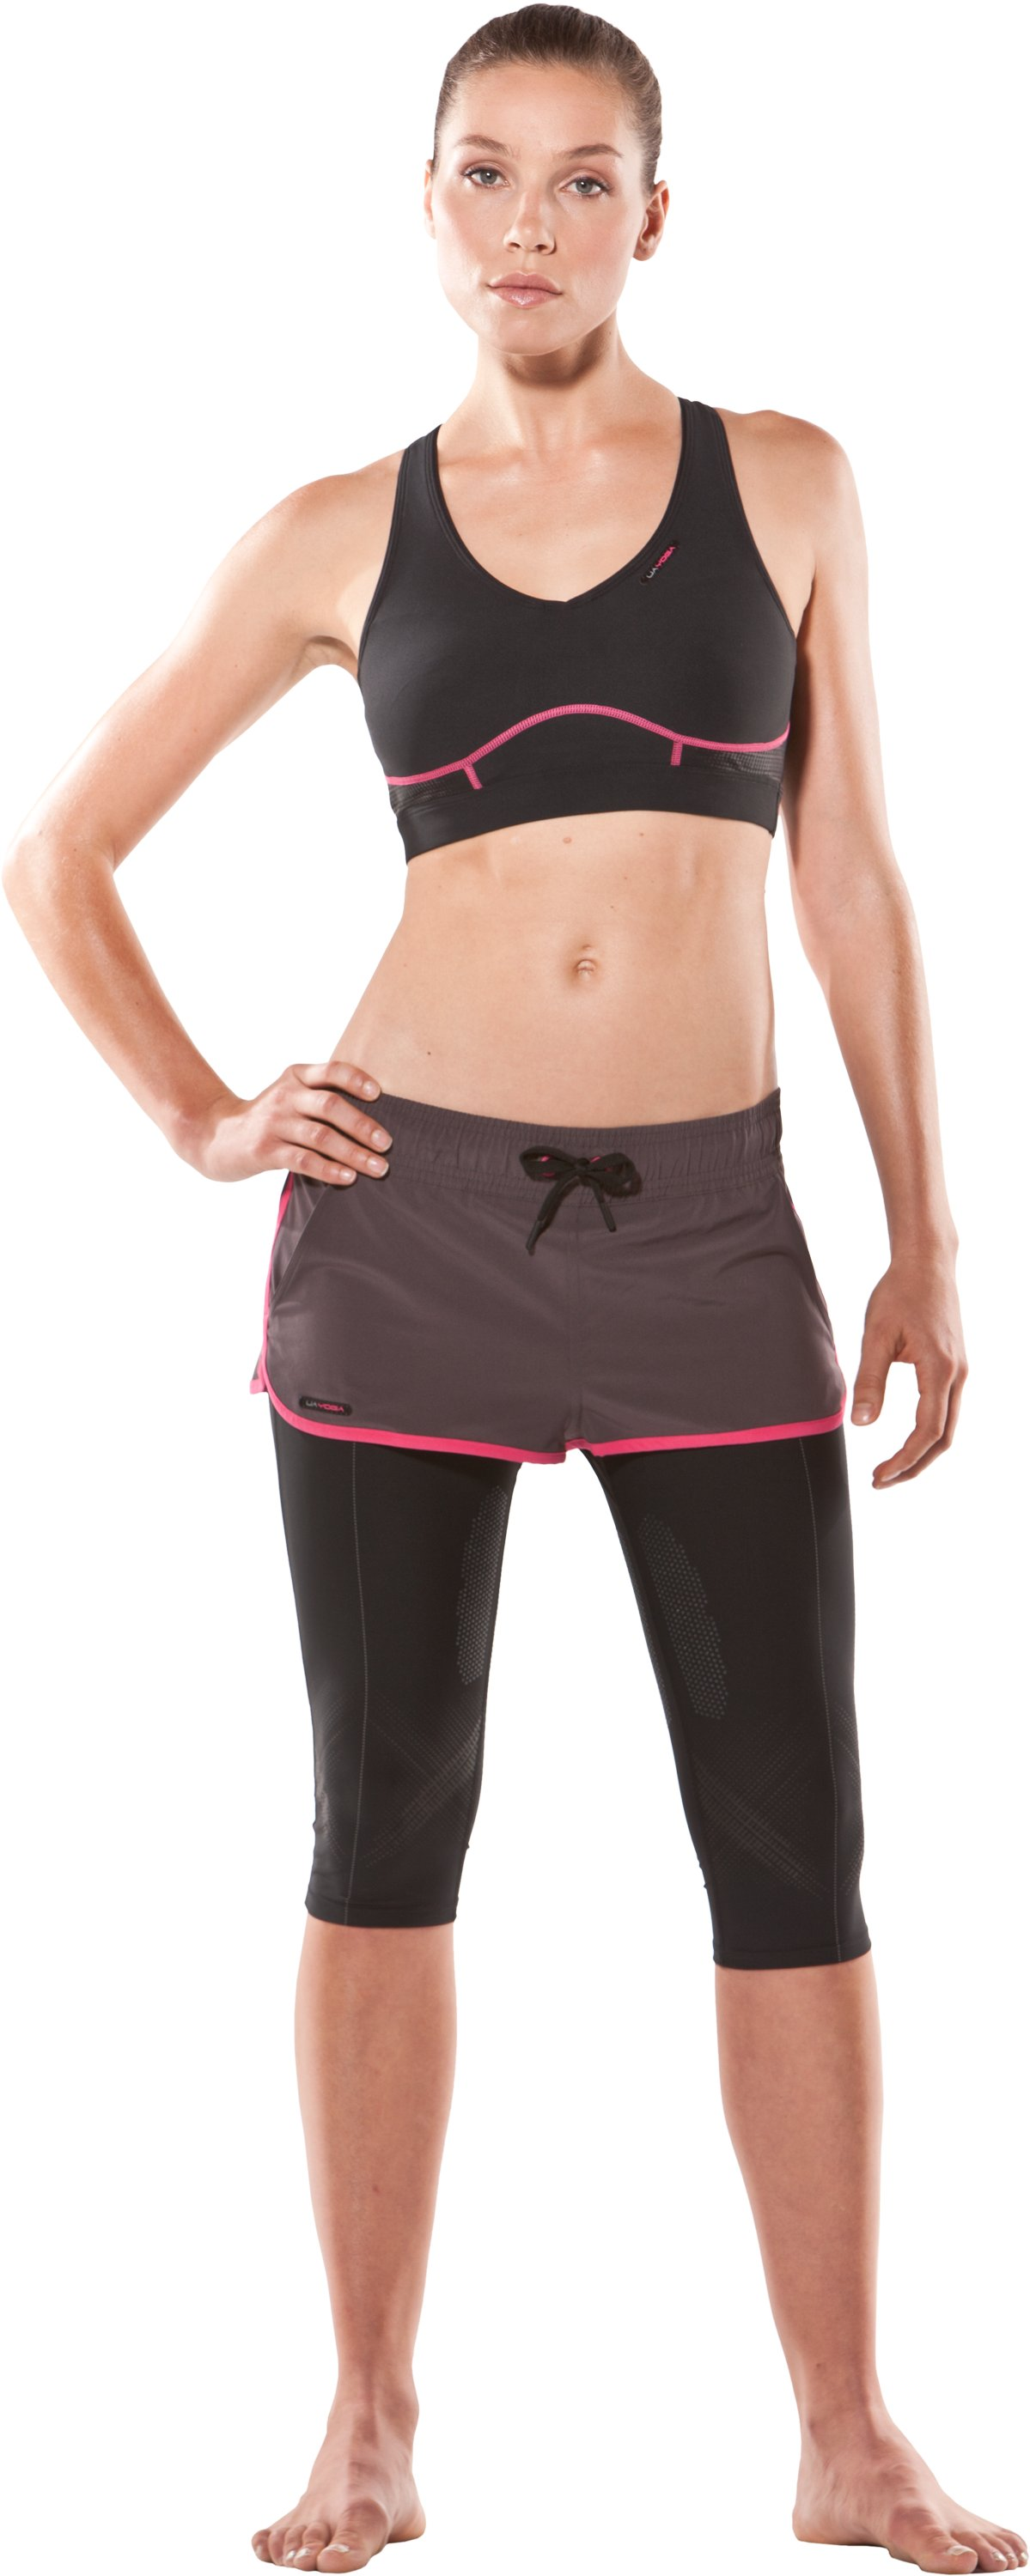 Women's Cobra Yoga Sports Bra, Black